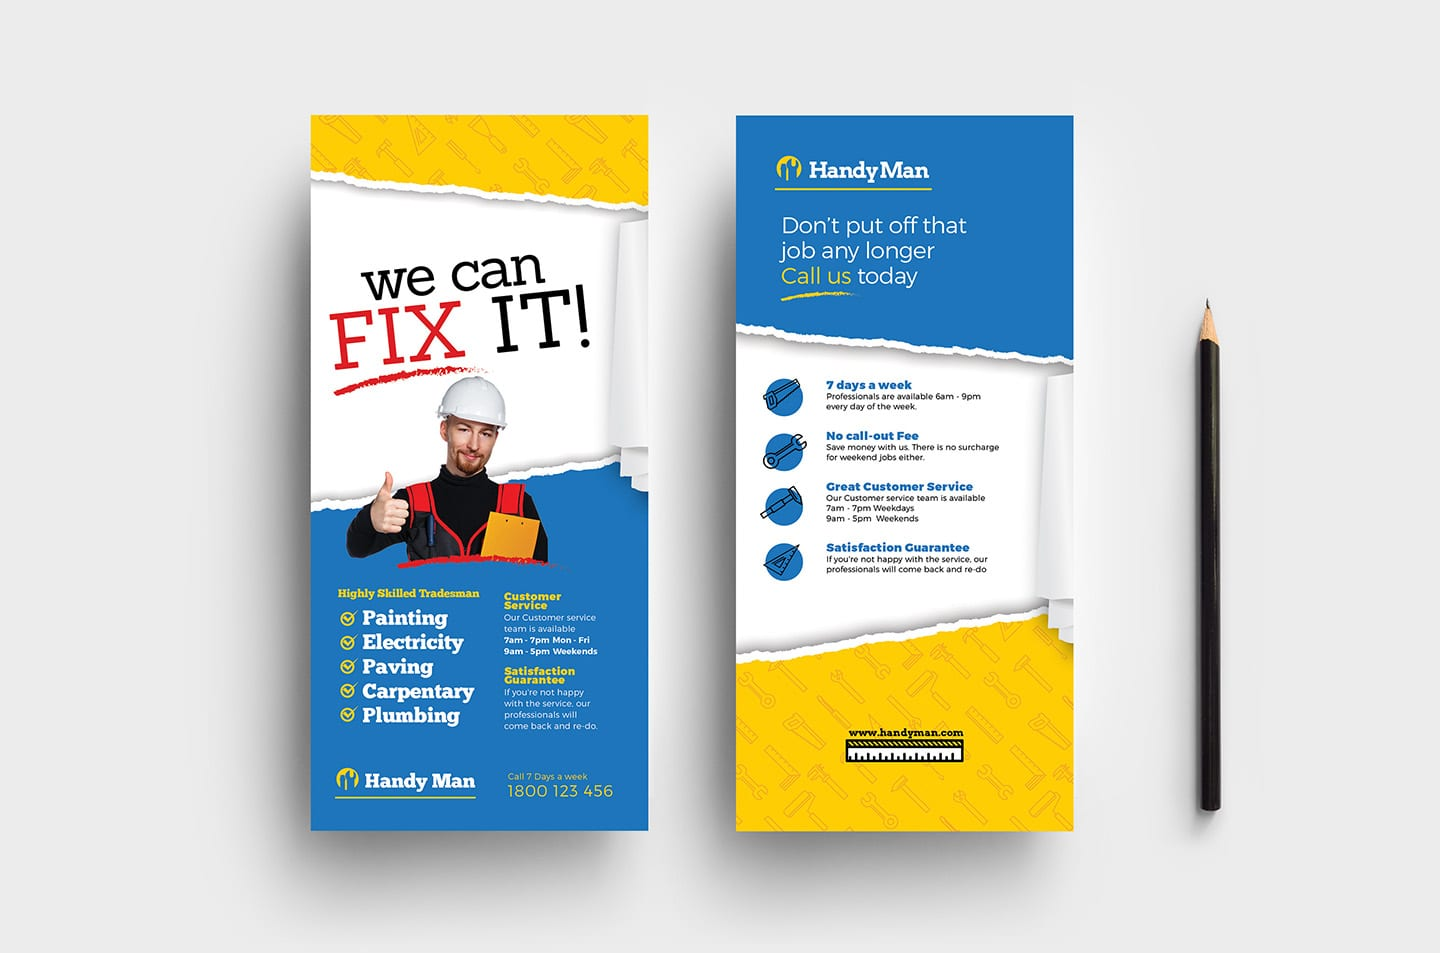 Handyman DL Rack Card Template in PSD, Ai & Vector